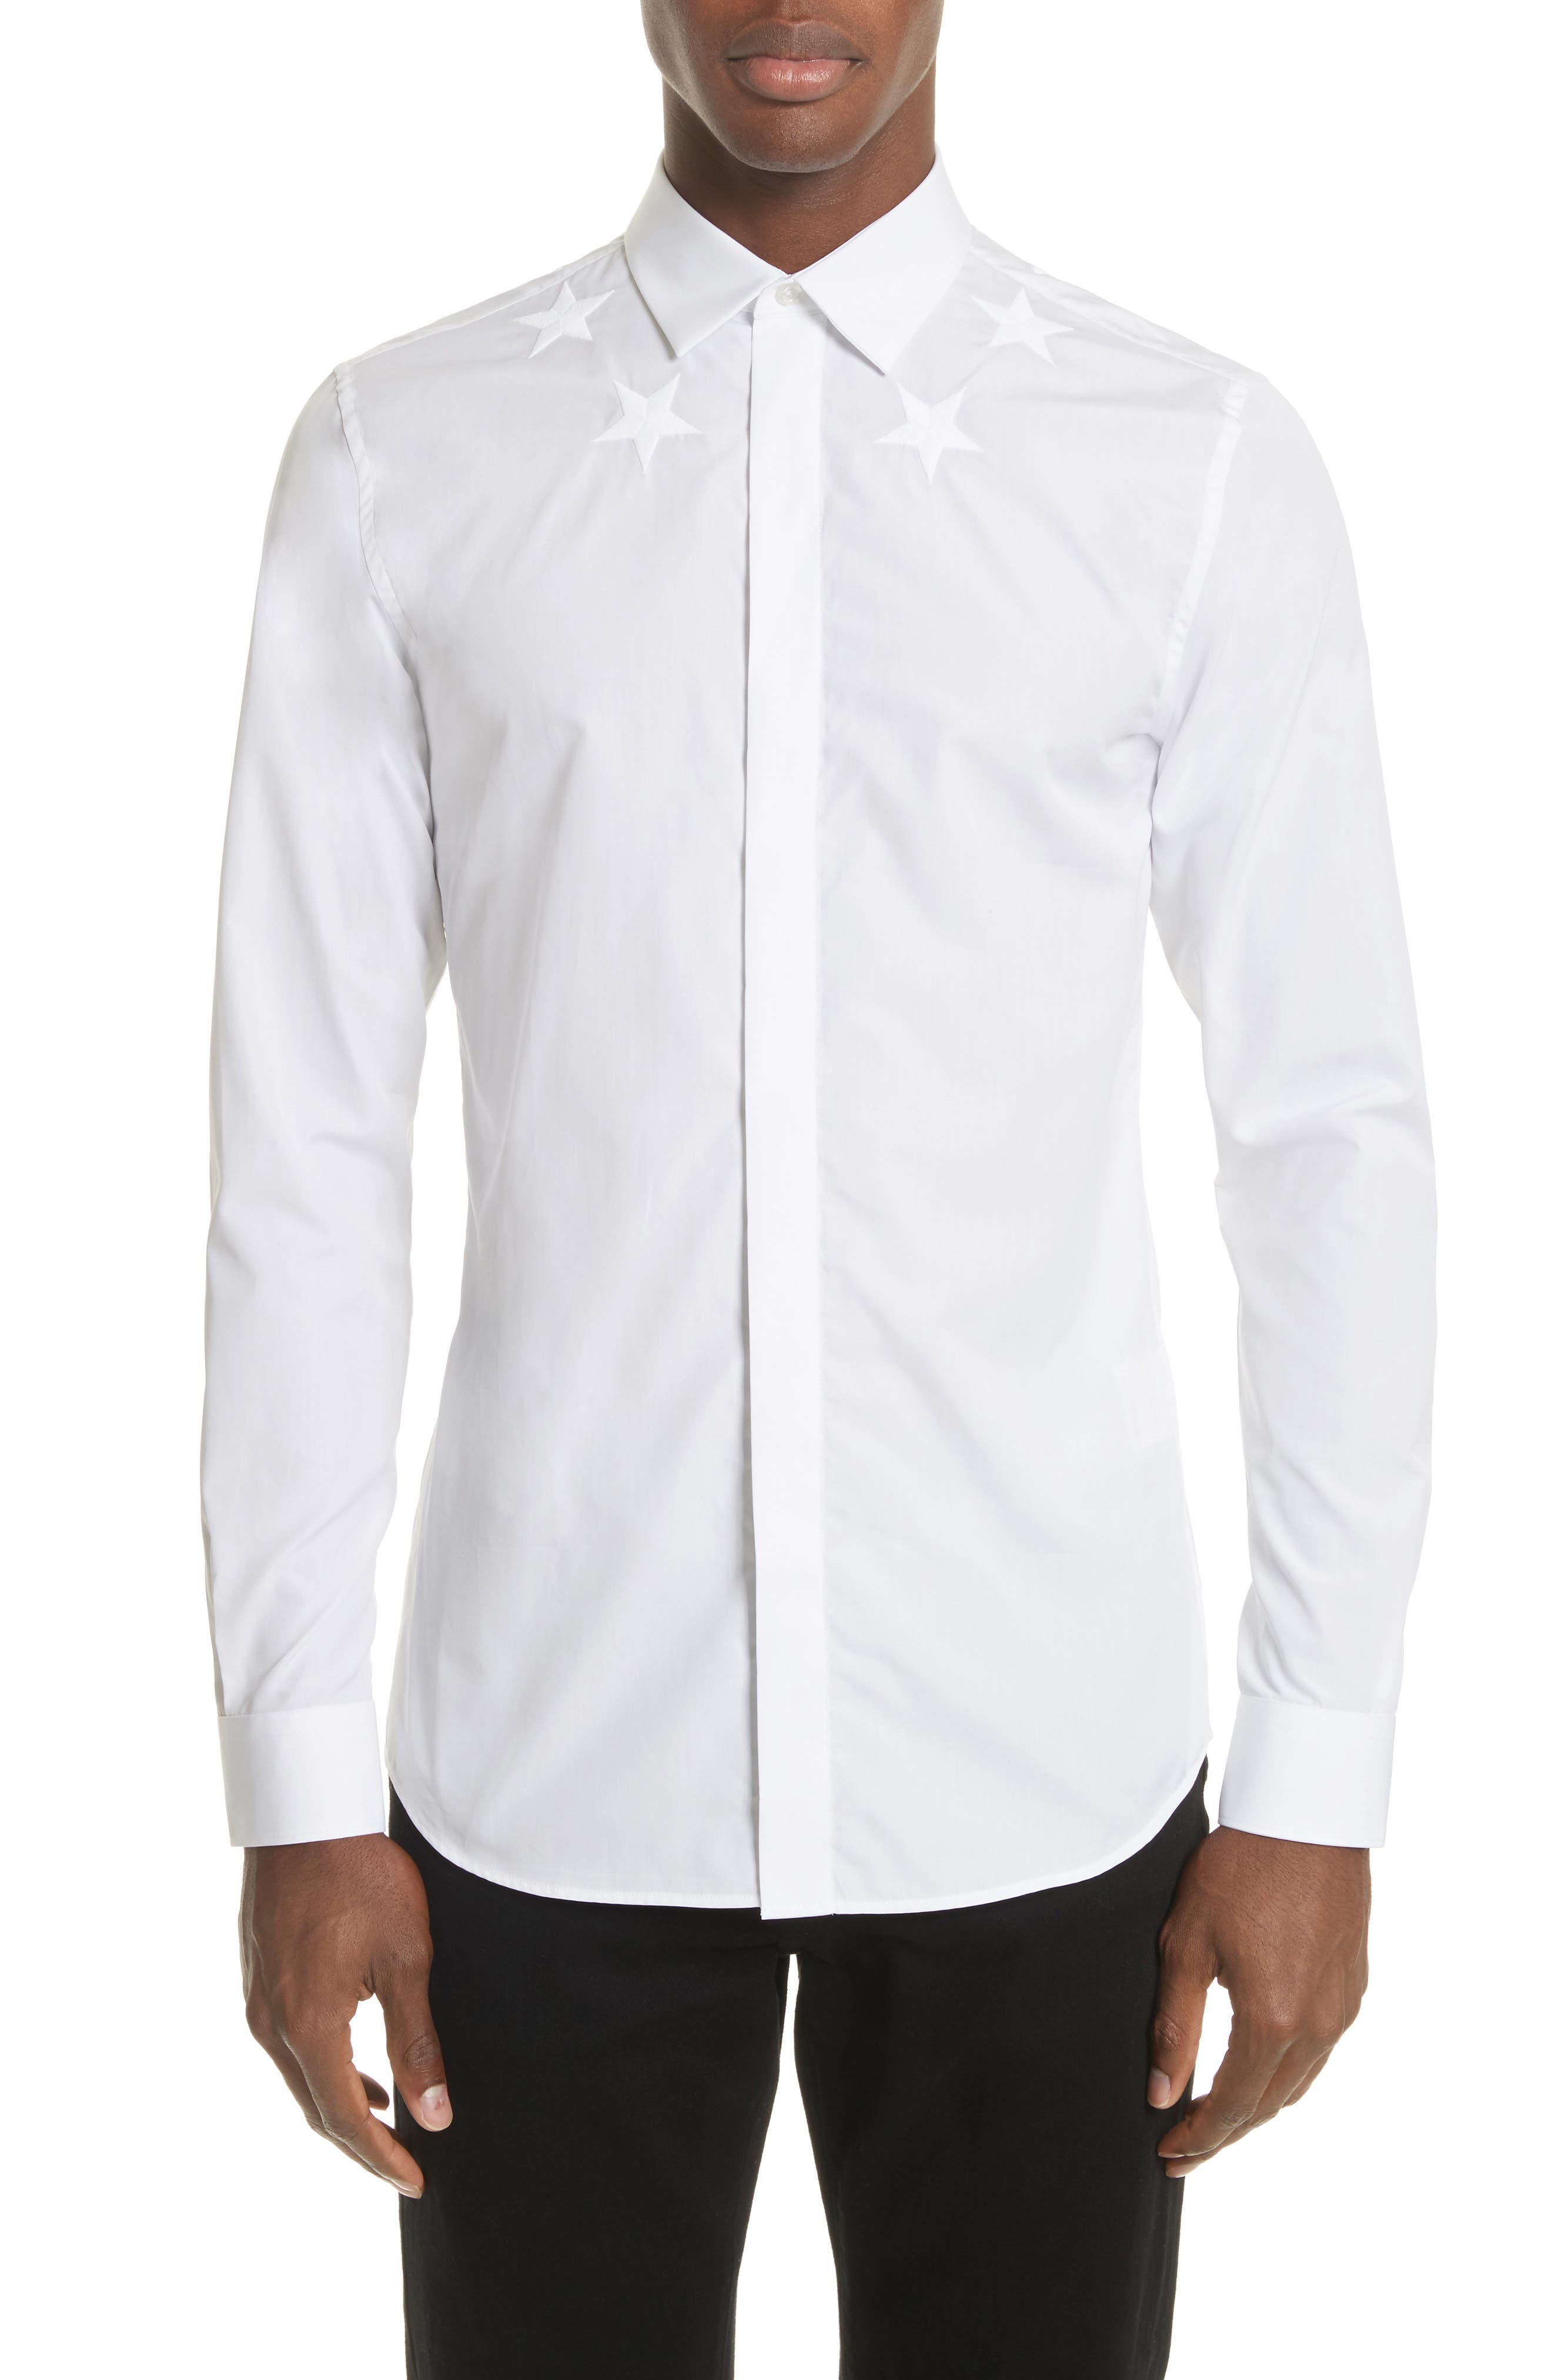 Givenchy Embroidered Star Dress Shirt